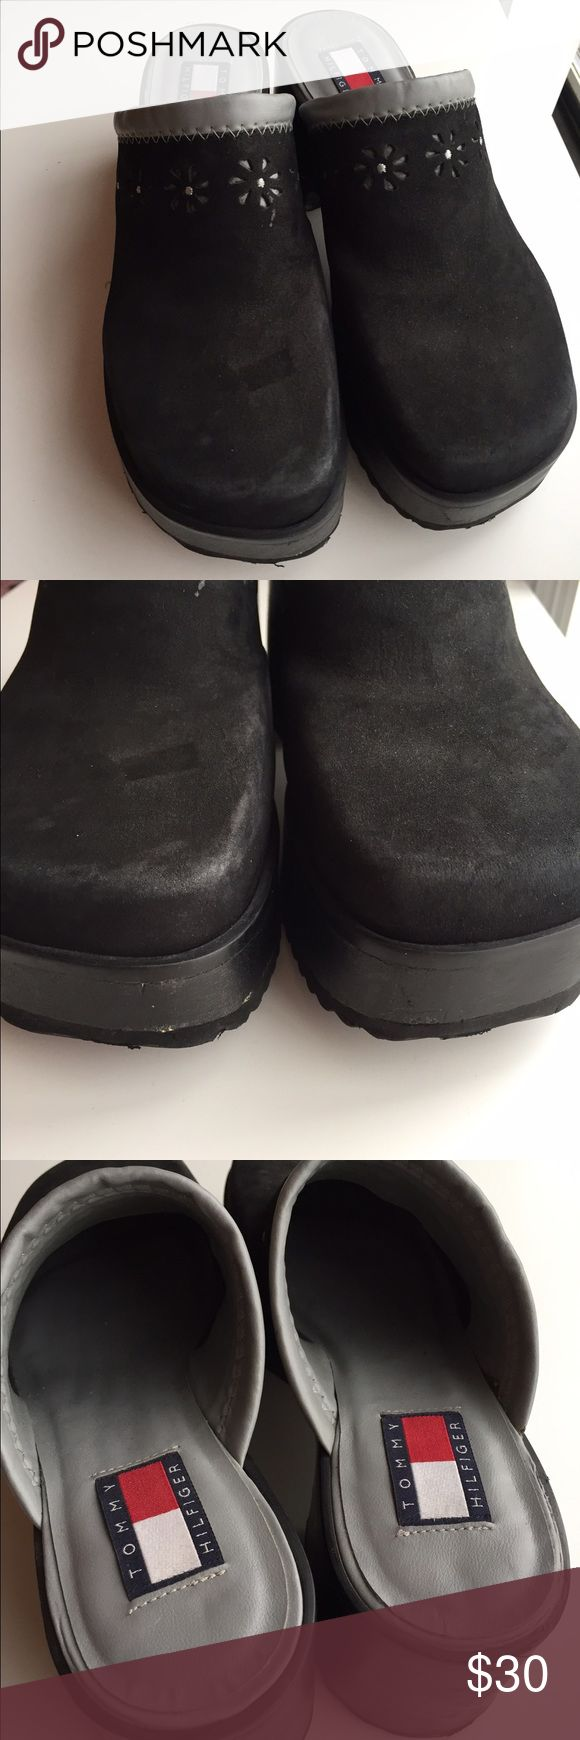 """Tommy Hilfiger black clogs mules size 9 Gently used Tommy Hilfiger black clogs mules size 9. 3"""" heel Tommy Hilfiger Shoes Mules & Clogs"""